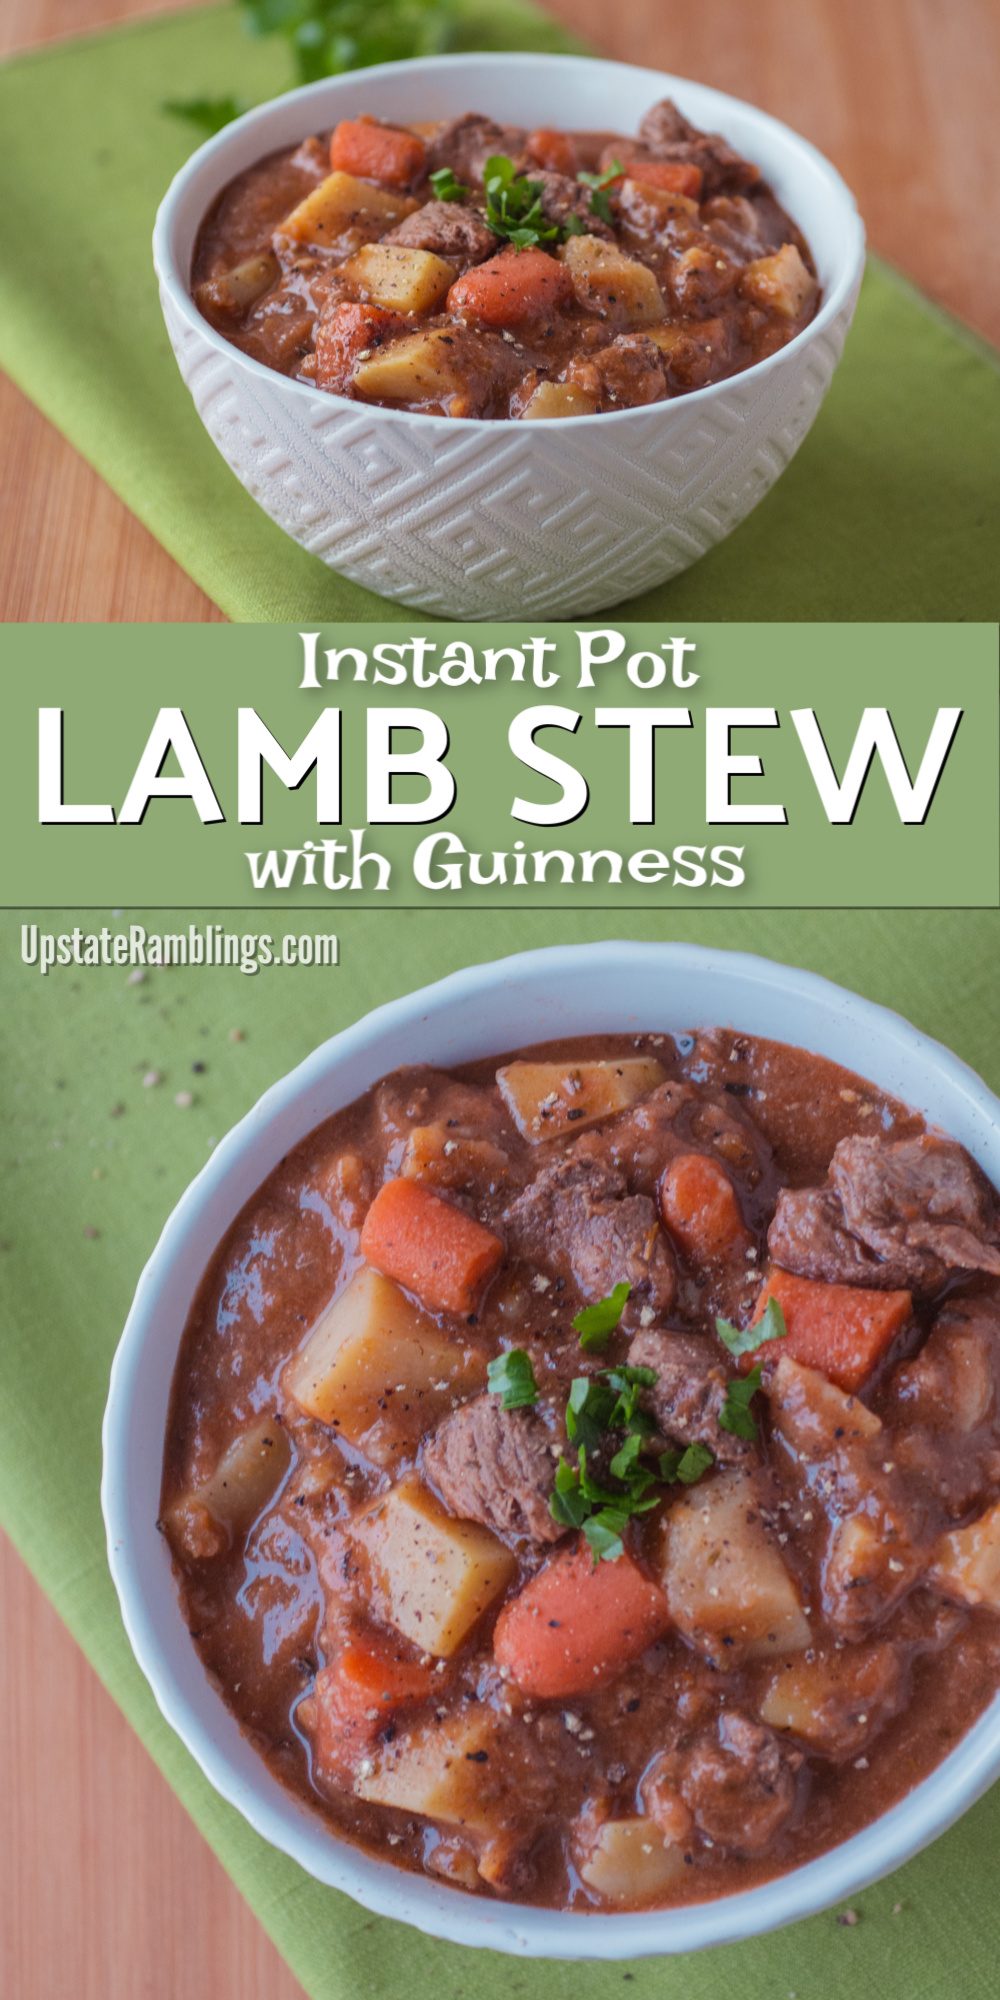 This tasty recipe for Instant Pot Lamb Stew is an easy Irish Dish perfect for St. Patrick's Day dinner! Find out how Guinness makes the broth rich and learn my trick for making sure your stew veggies aren't mushy in this Irish Lamb Stew with Guinness. #Irishrecipes #guinness #instantpot